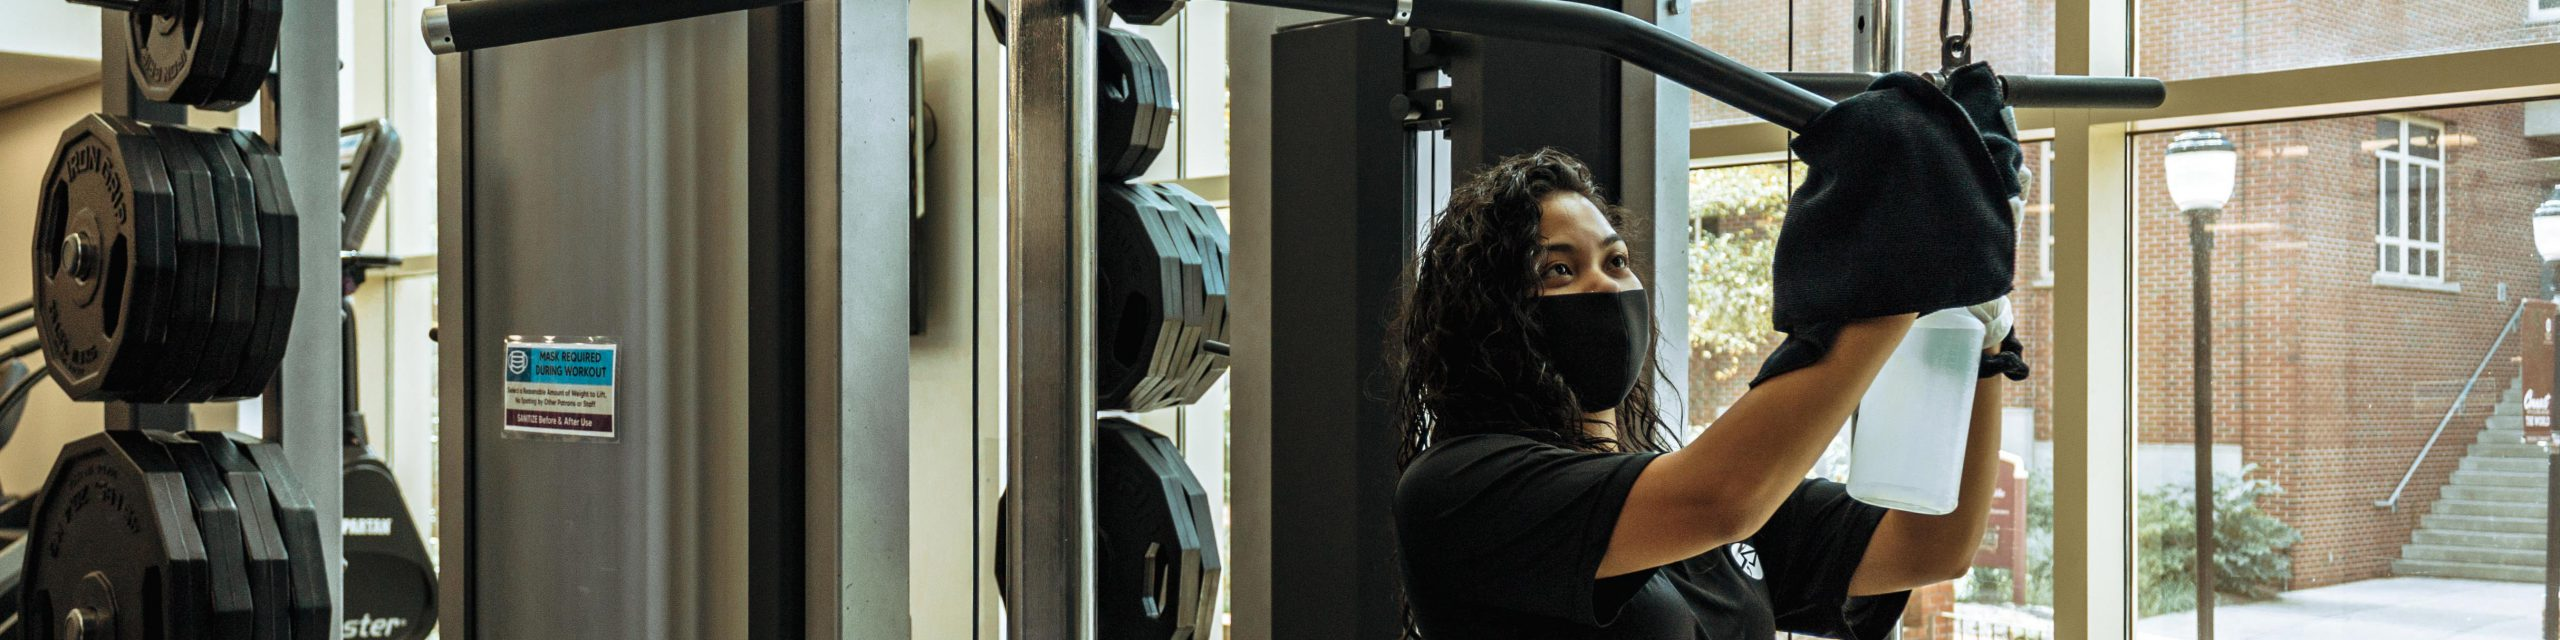 A girl wearing a facial covering cleaning equipment at the gym.